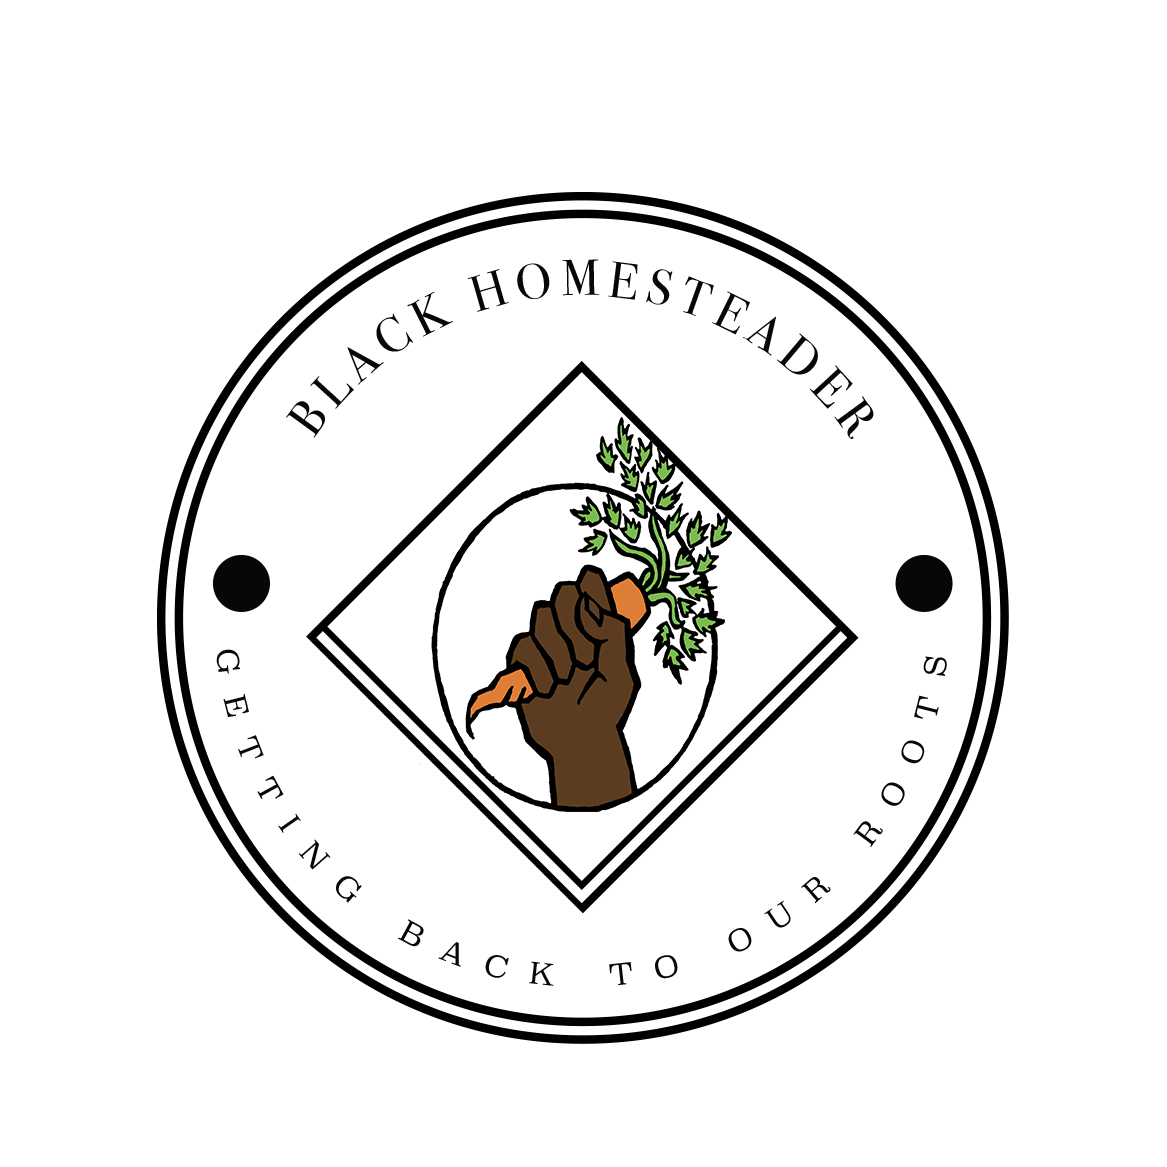 Black Homesteader- Gardening, Self Sufficiency, DIY, Prepping